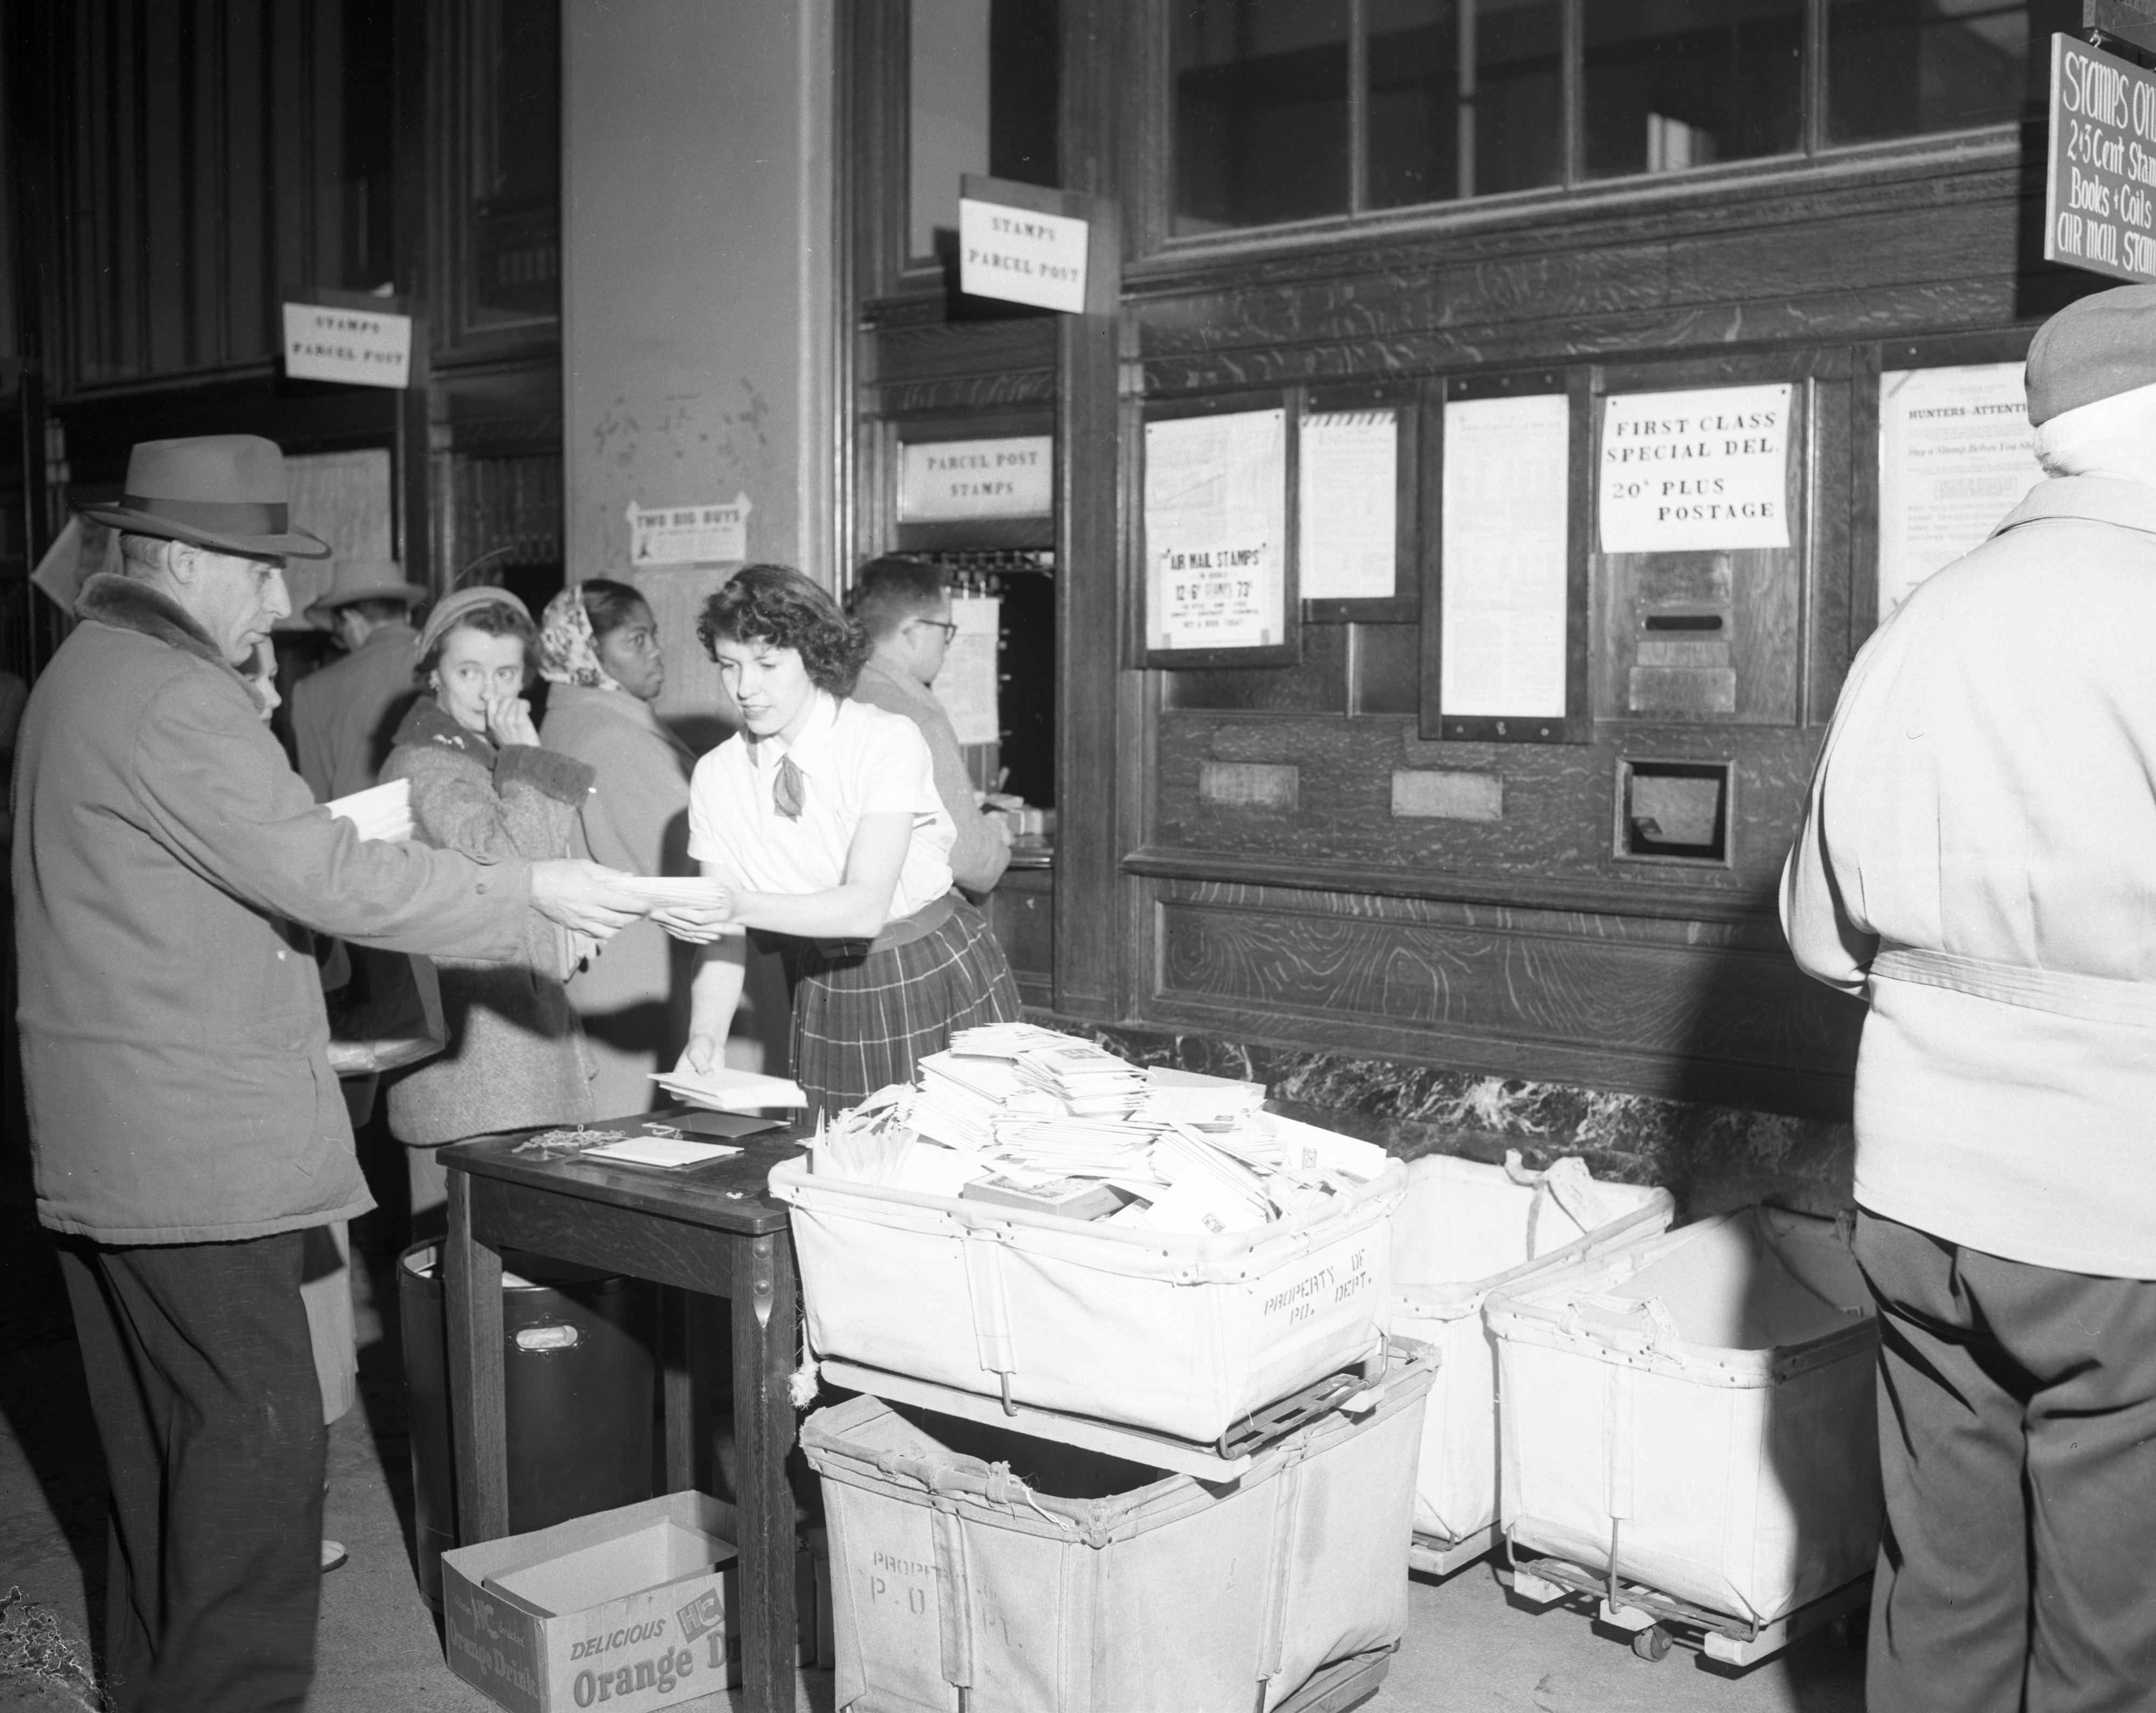 A busy Christmas season at the Ann Arbor Post Office, December 1955 image